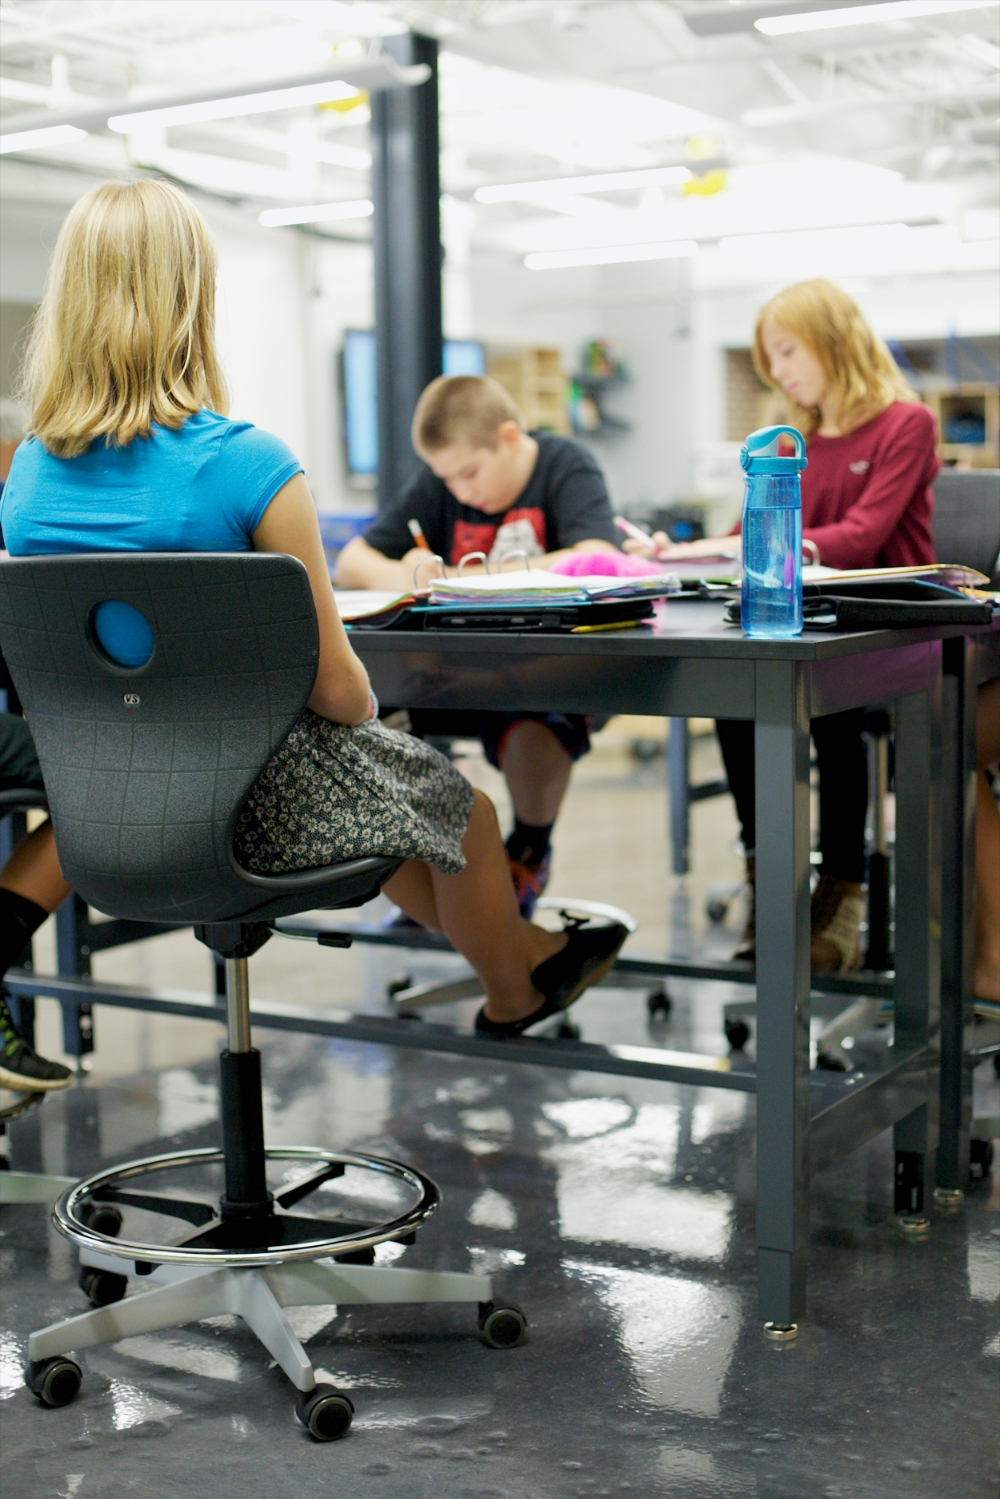 Ergonomic seating invites continual micro-movements that stimulate brain activity and can increase student focus.